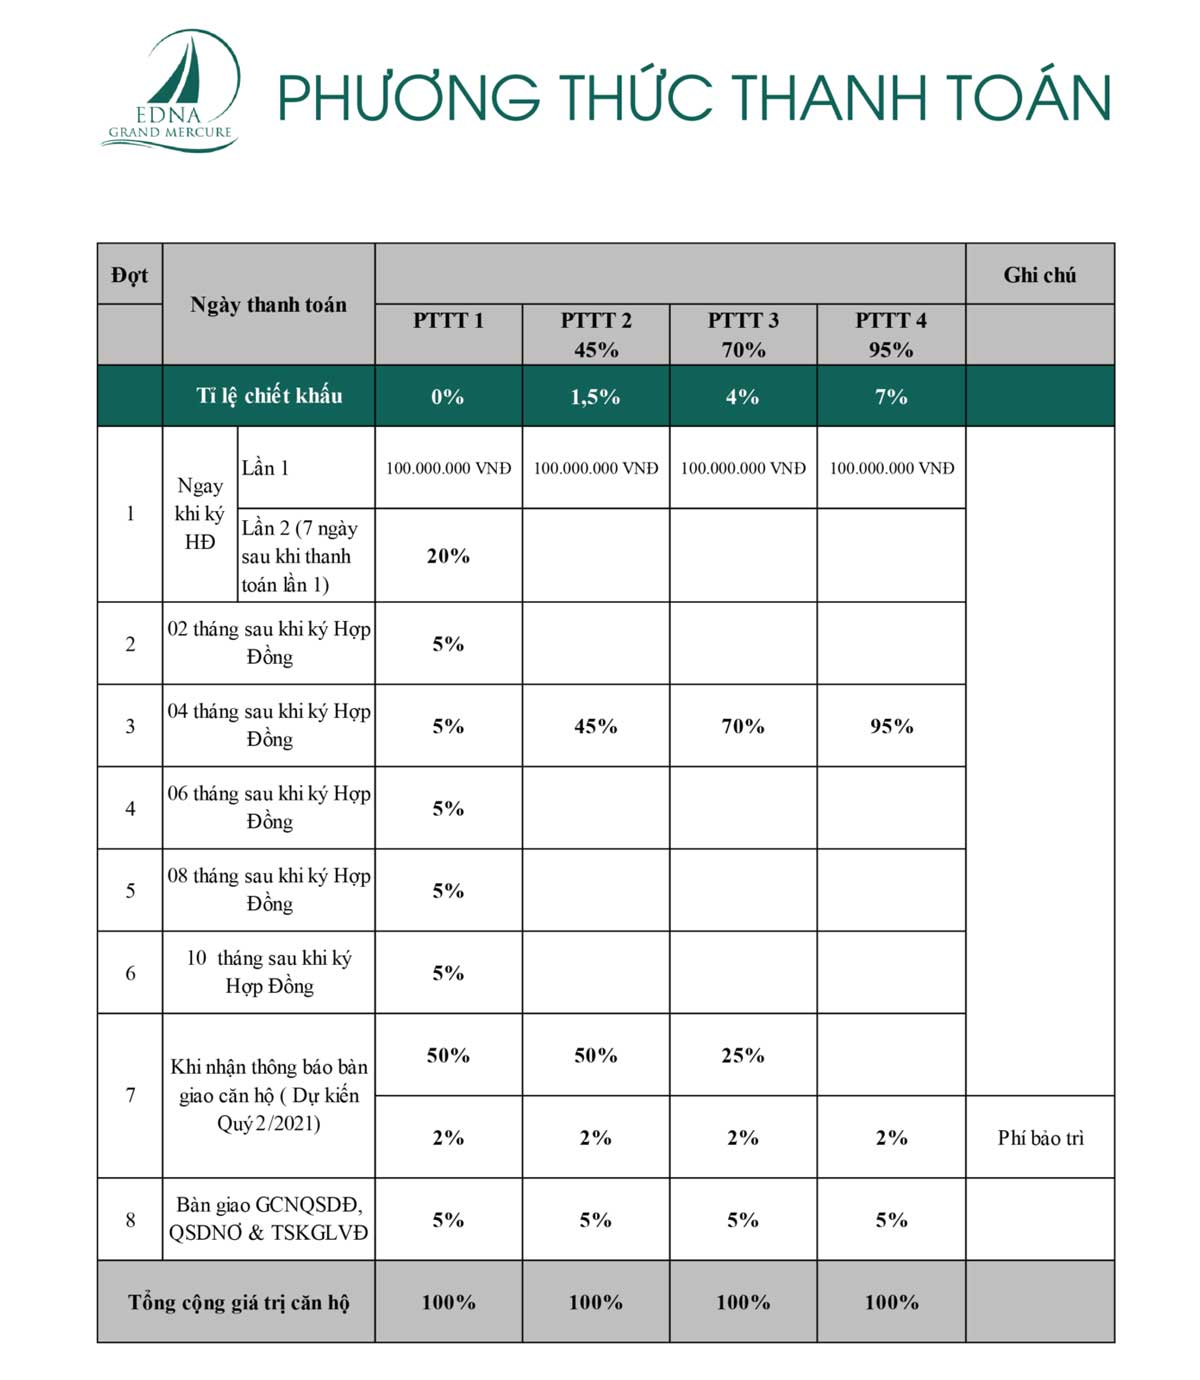 phuong thuc thanh toan edna grand mercure - EDNA GRAND MERCURE PHAN THIẾT